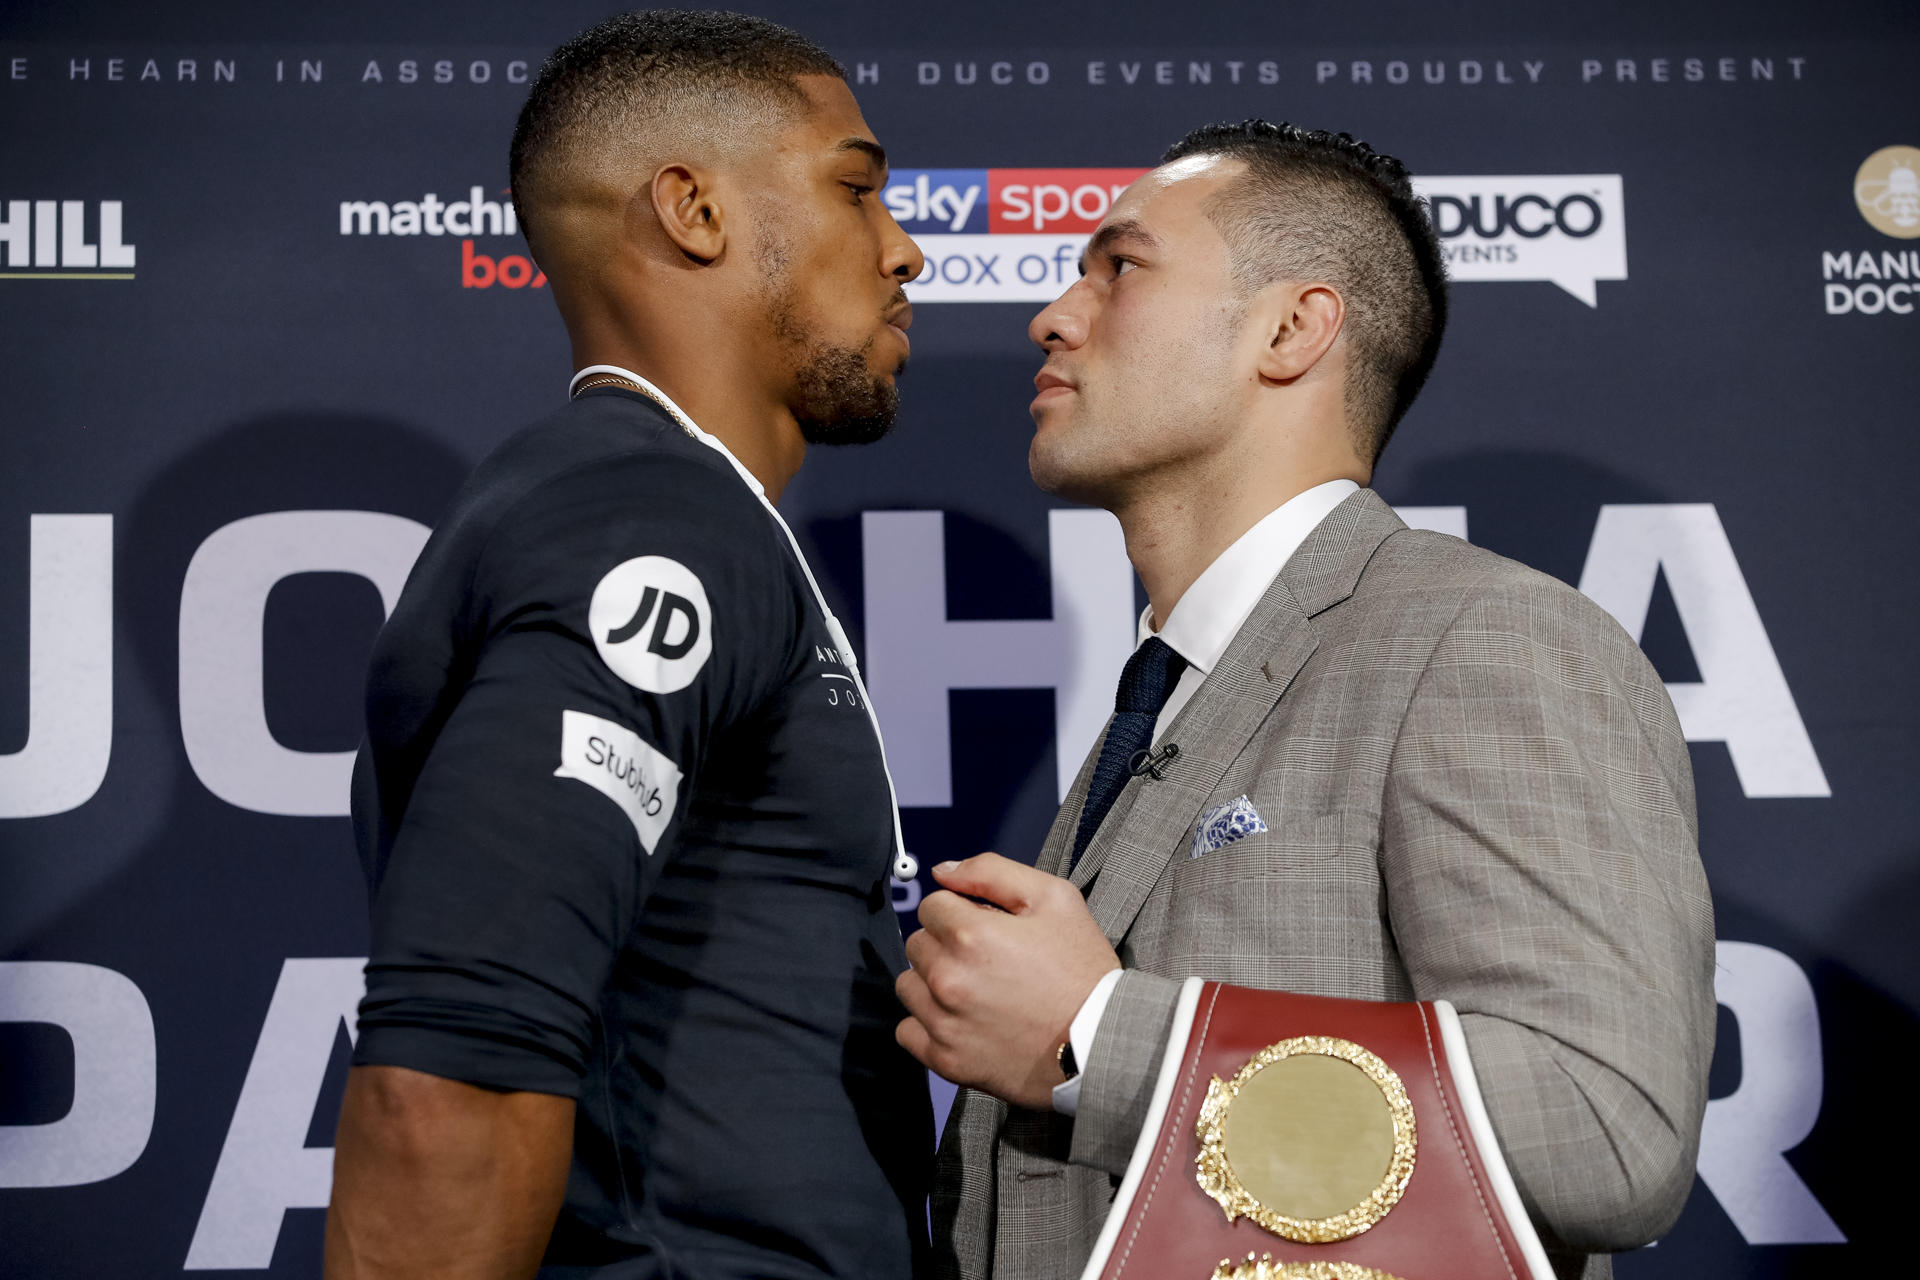 Joshua vs. Parker Preview